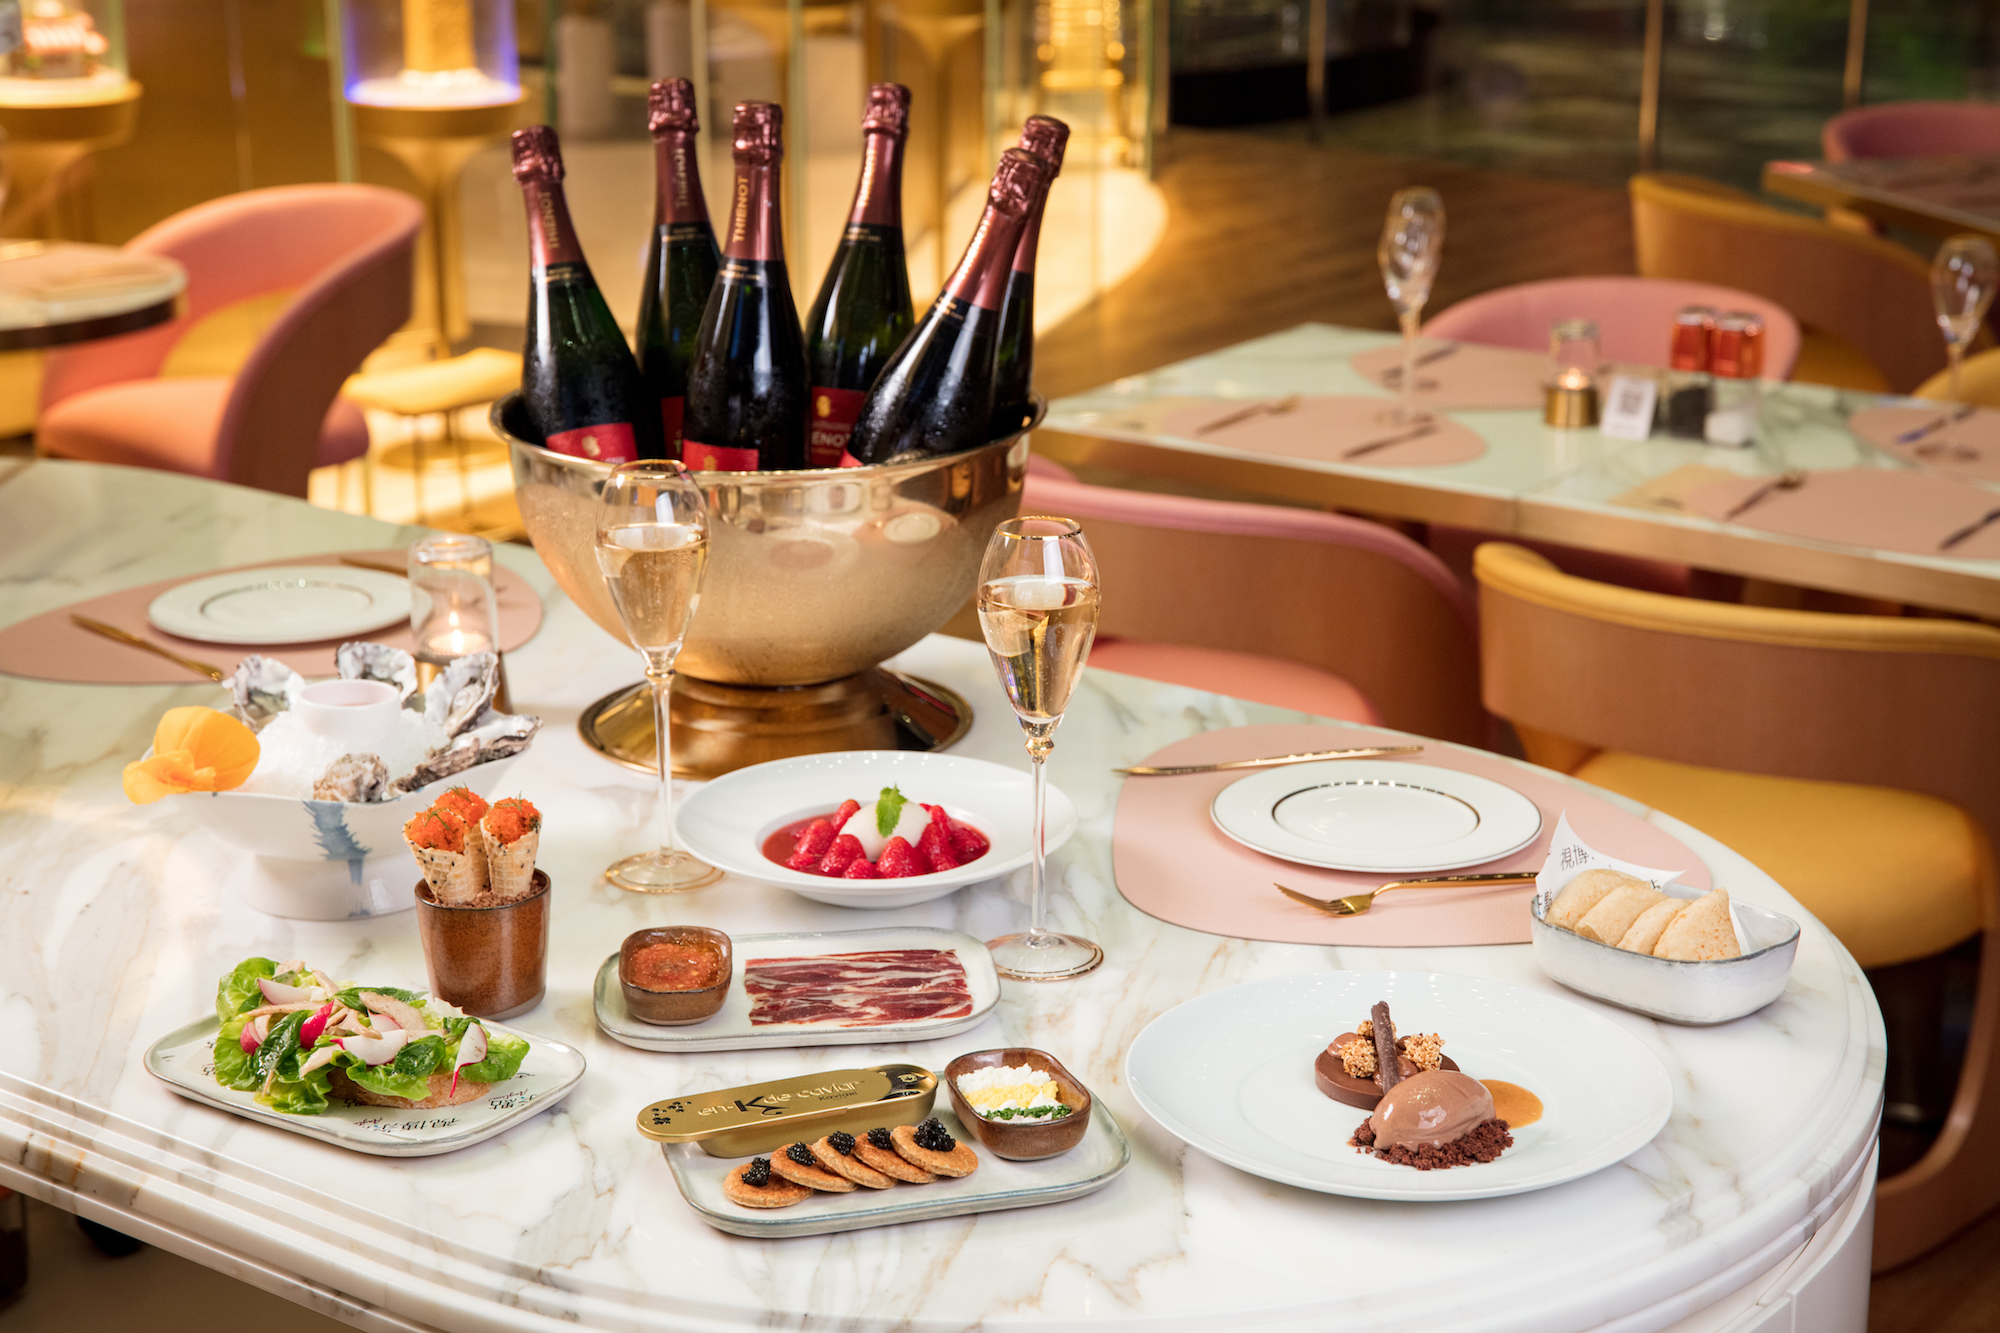 Saturday Champagne Night at Anytime MGM Cotai Horizontal Photo with Food on the Table